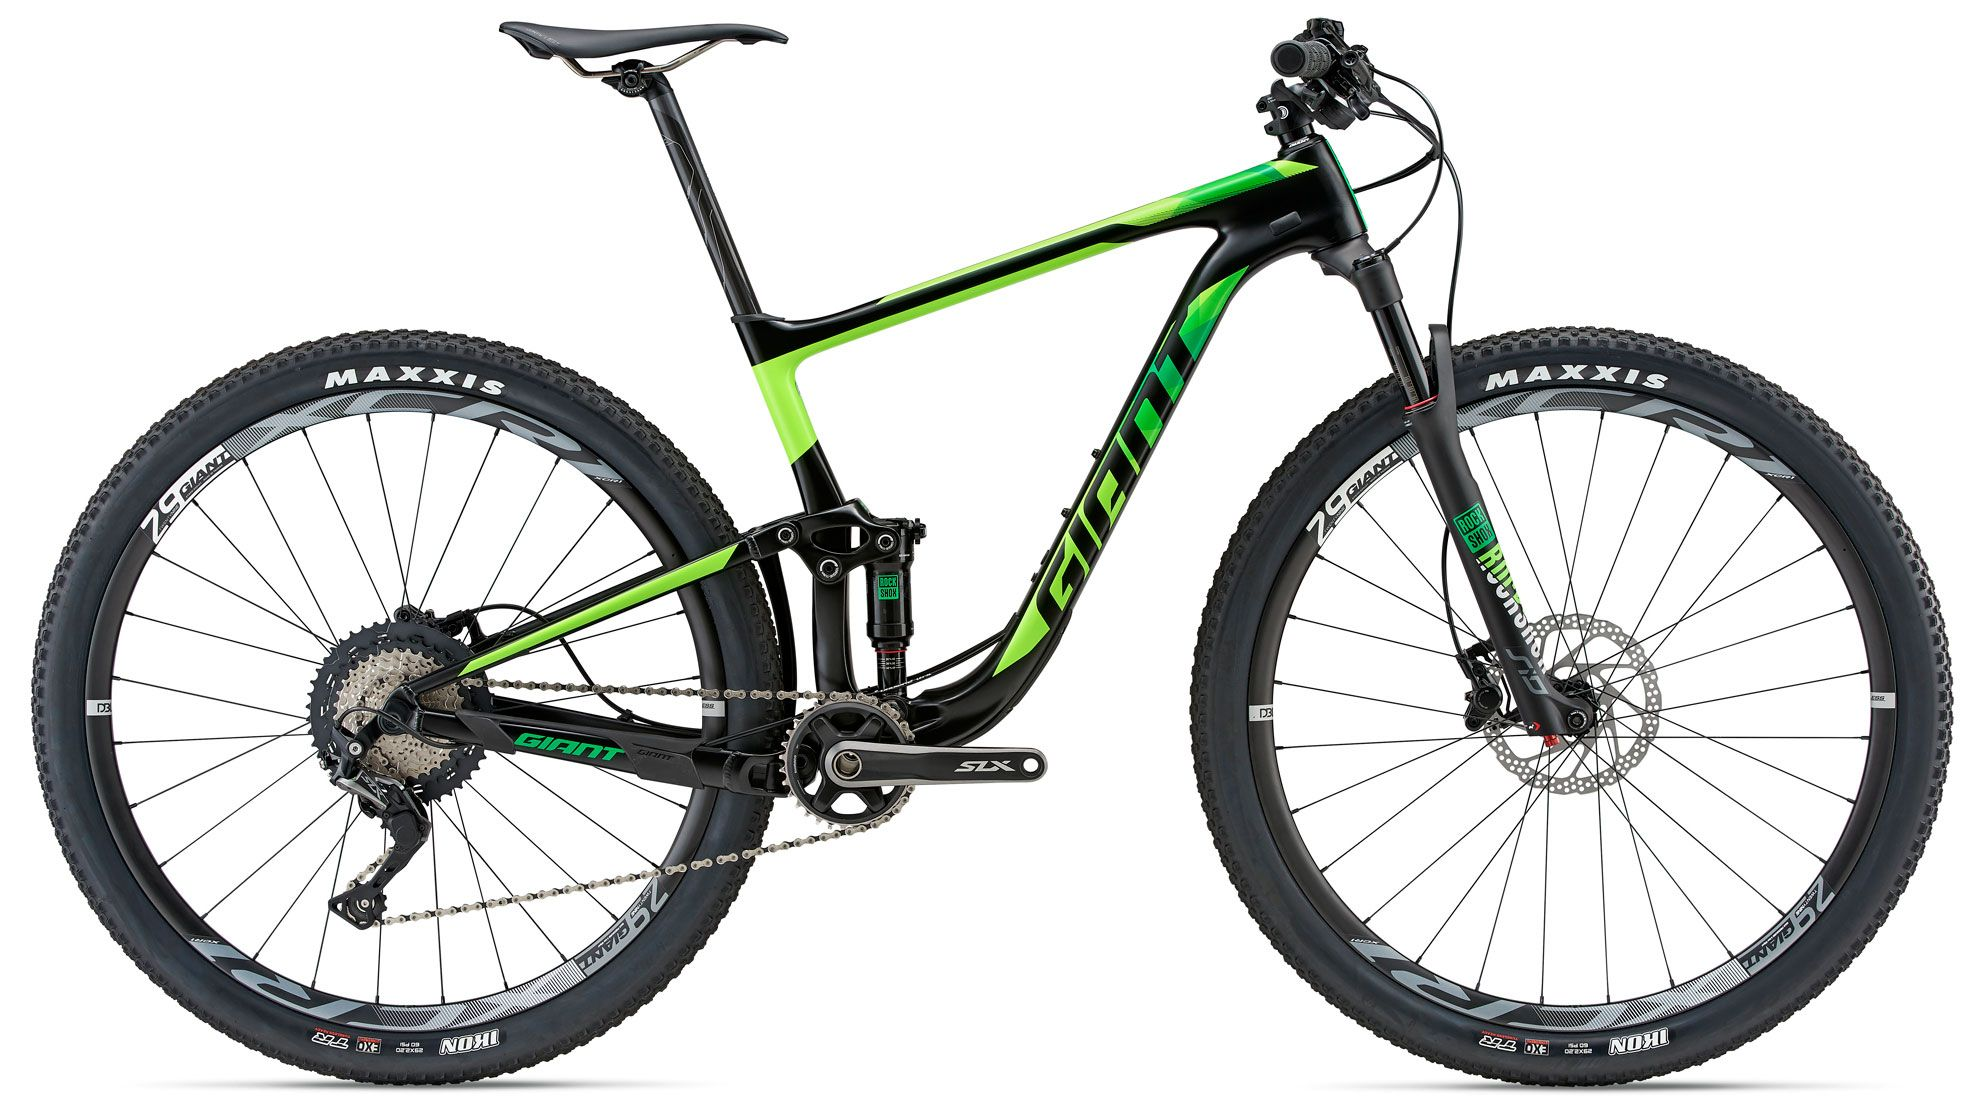 Велосипед Giant Anthem Advanced 29er 1 2018 велосипед giant trinity advanced pro 1 2016